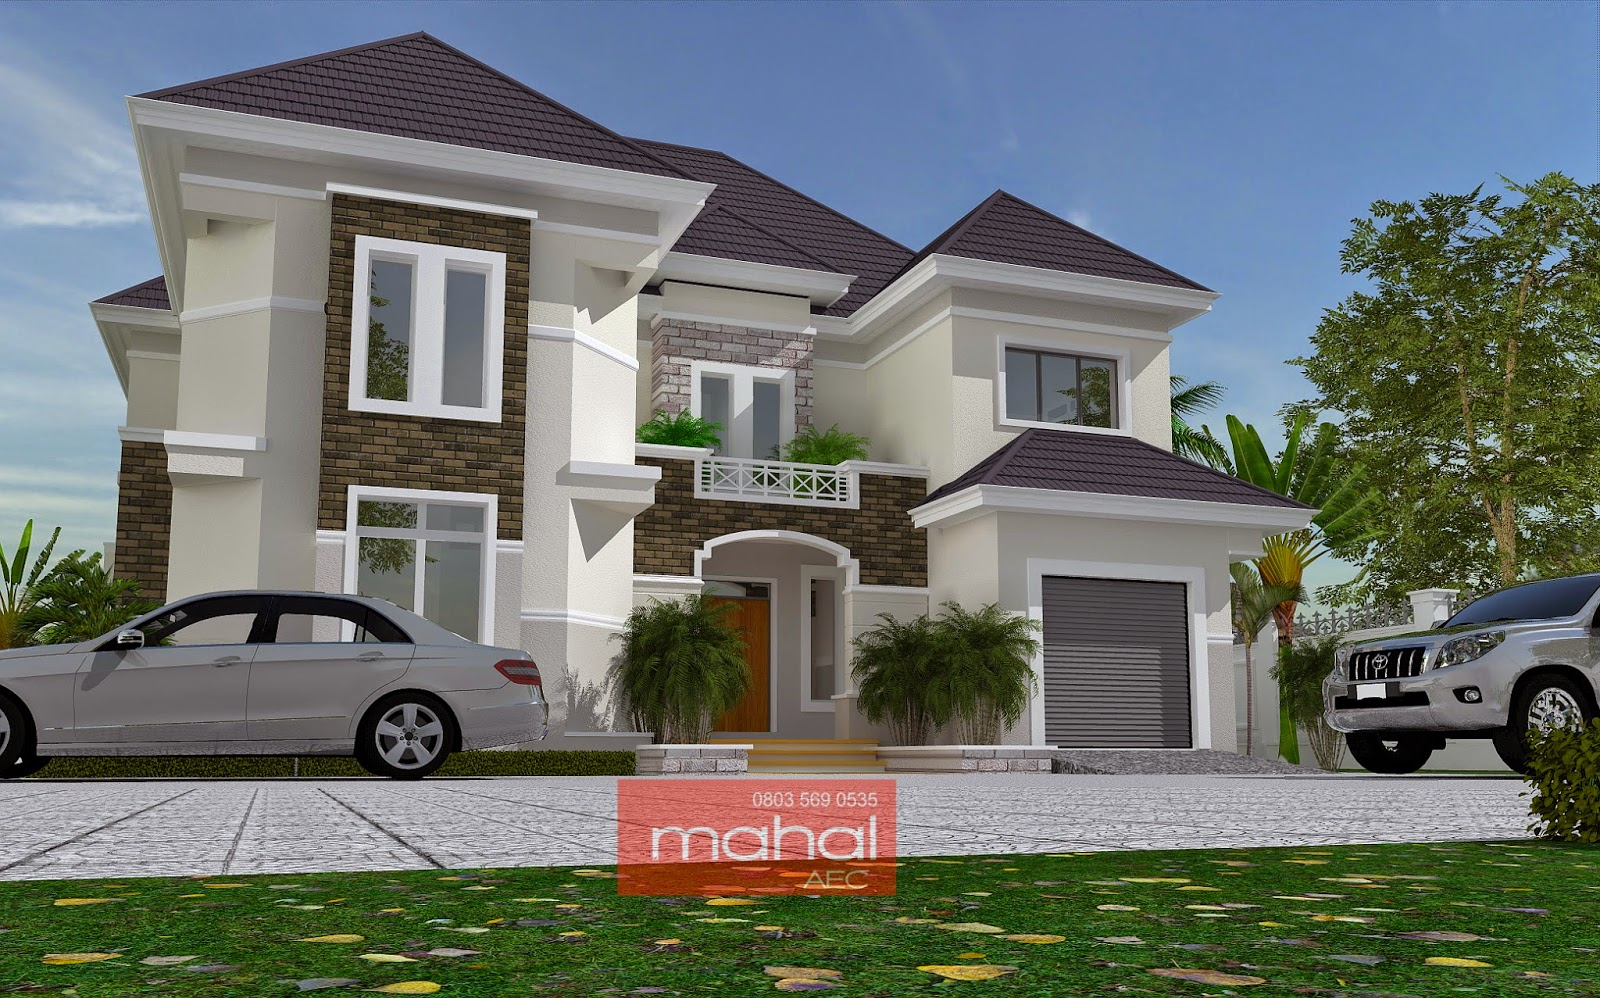 Contemporary nigerian residential architecture ovie house for Nigerian home designs photos